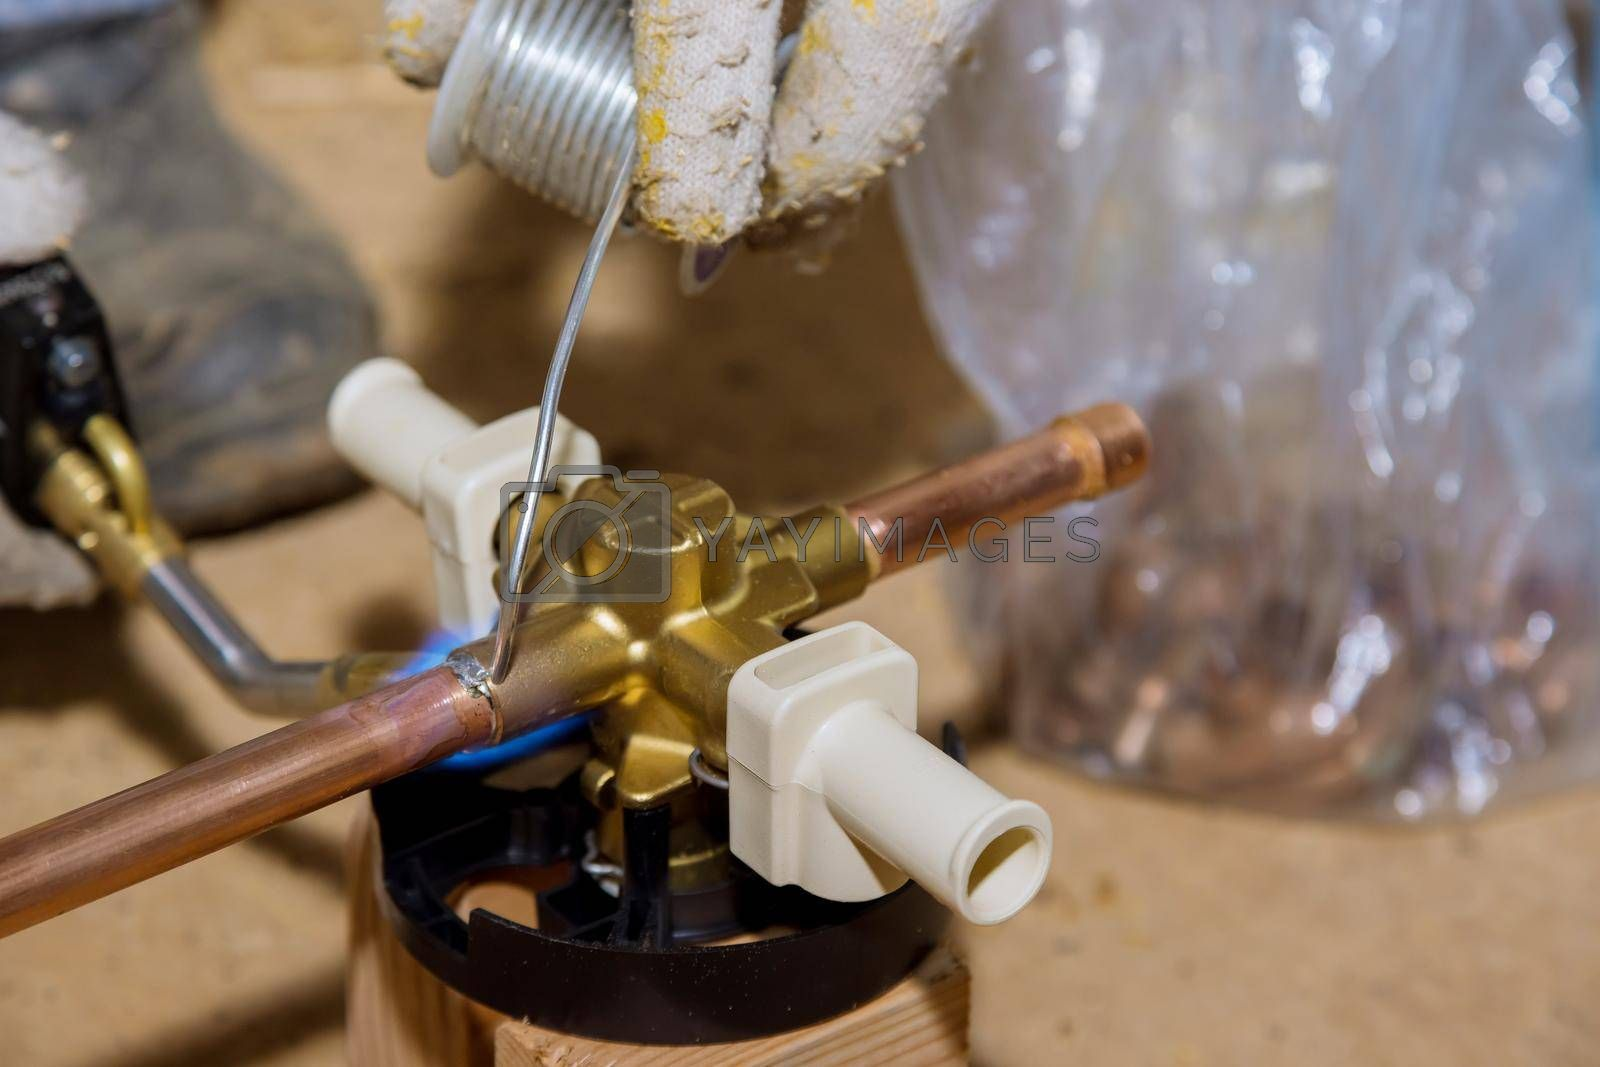 Royalty free image of Blue flame torch soldering a brass diverter for shower bathtub by ungvar